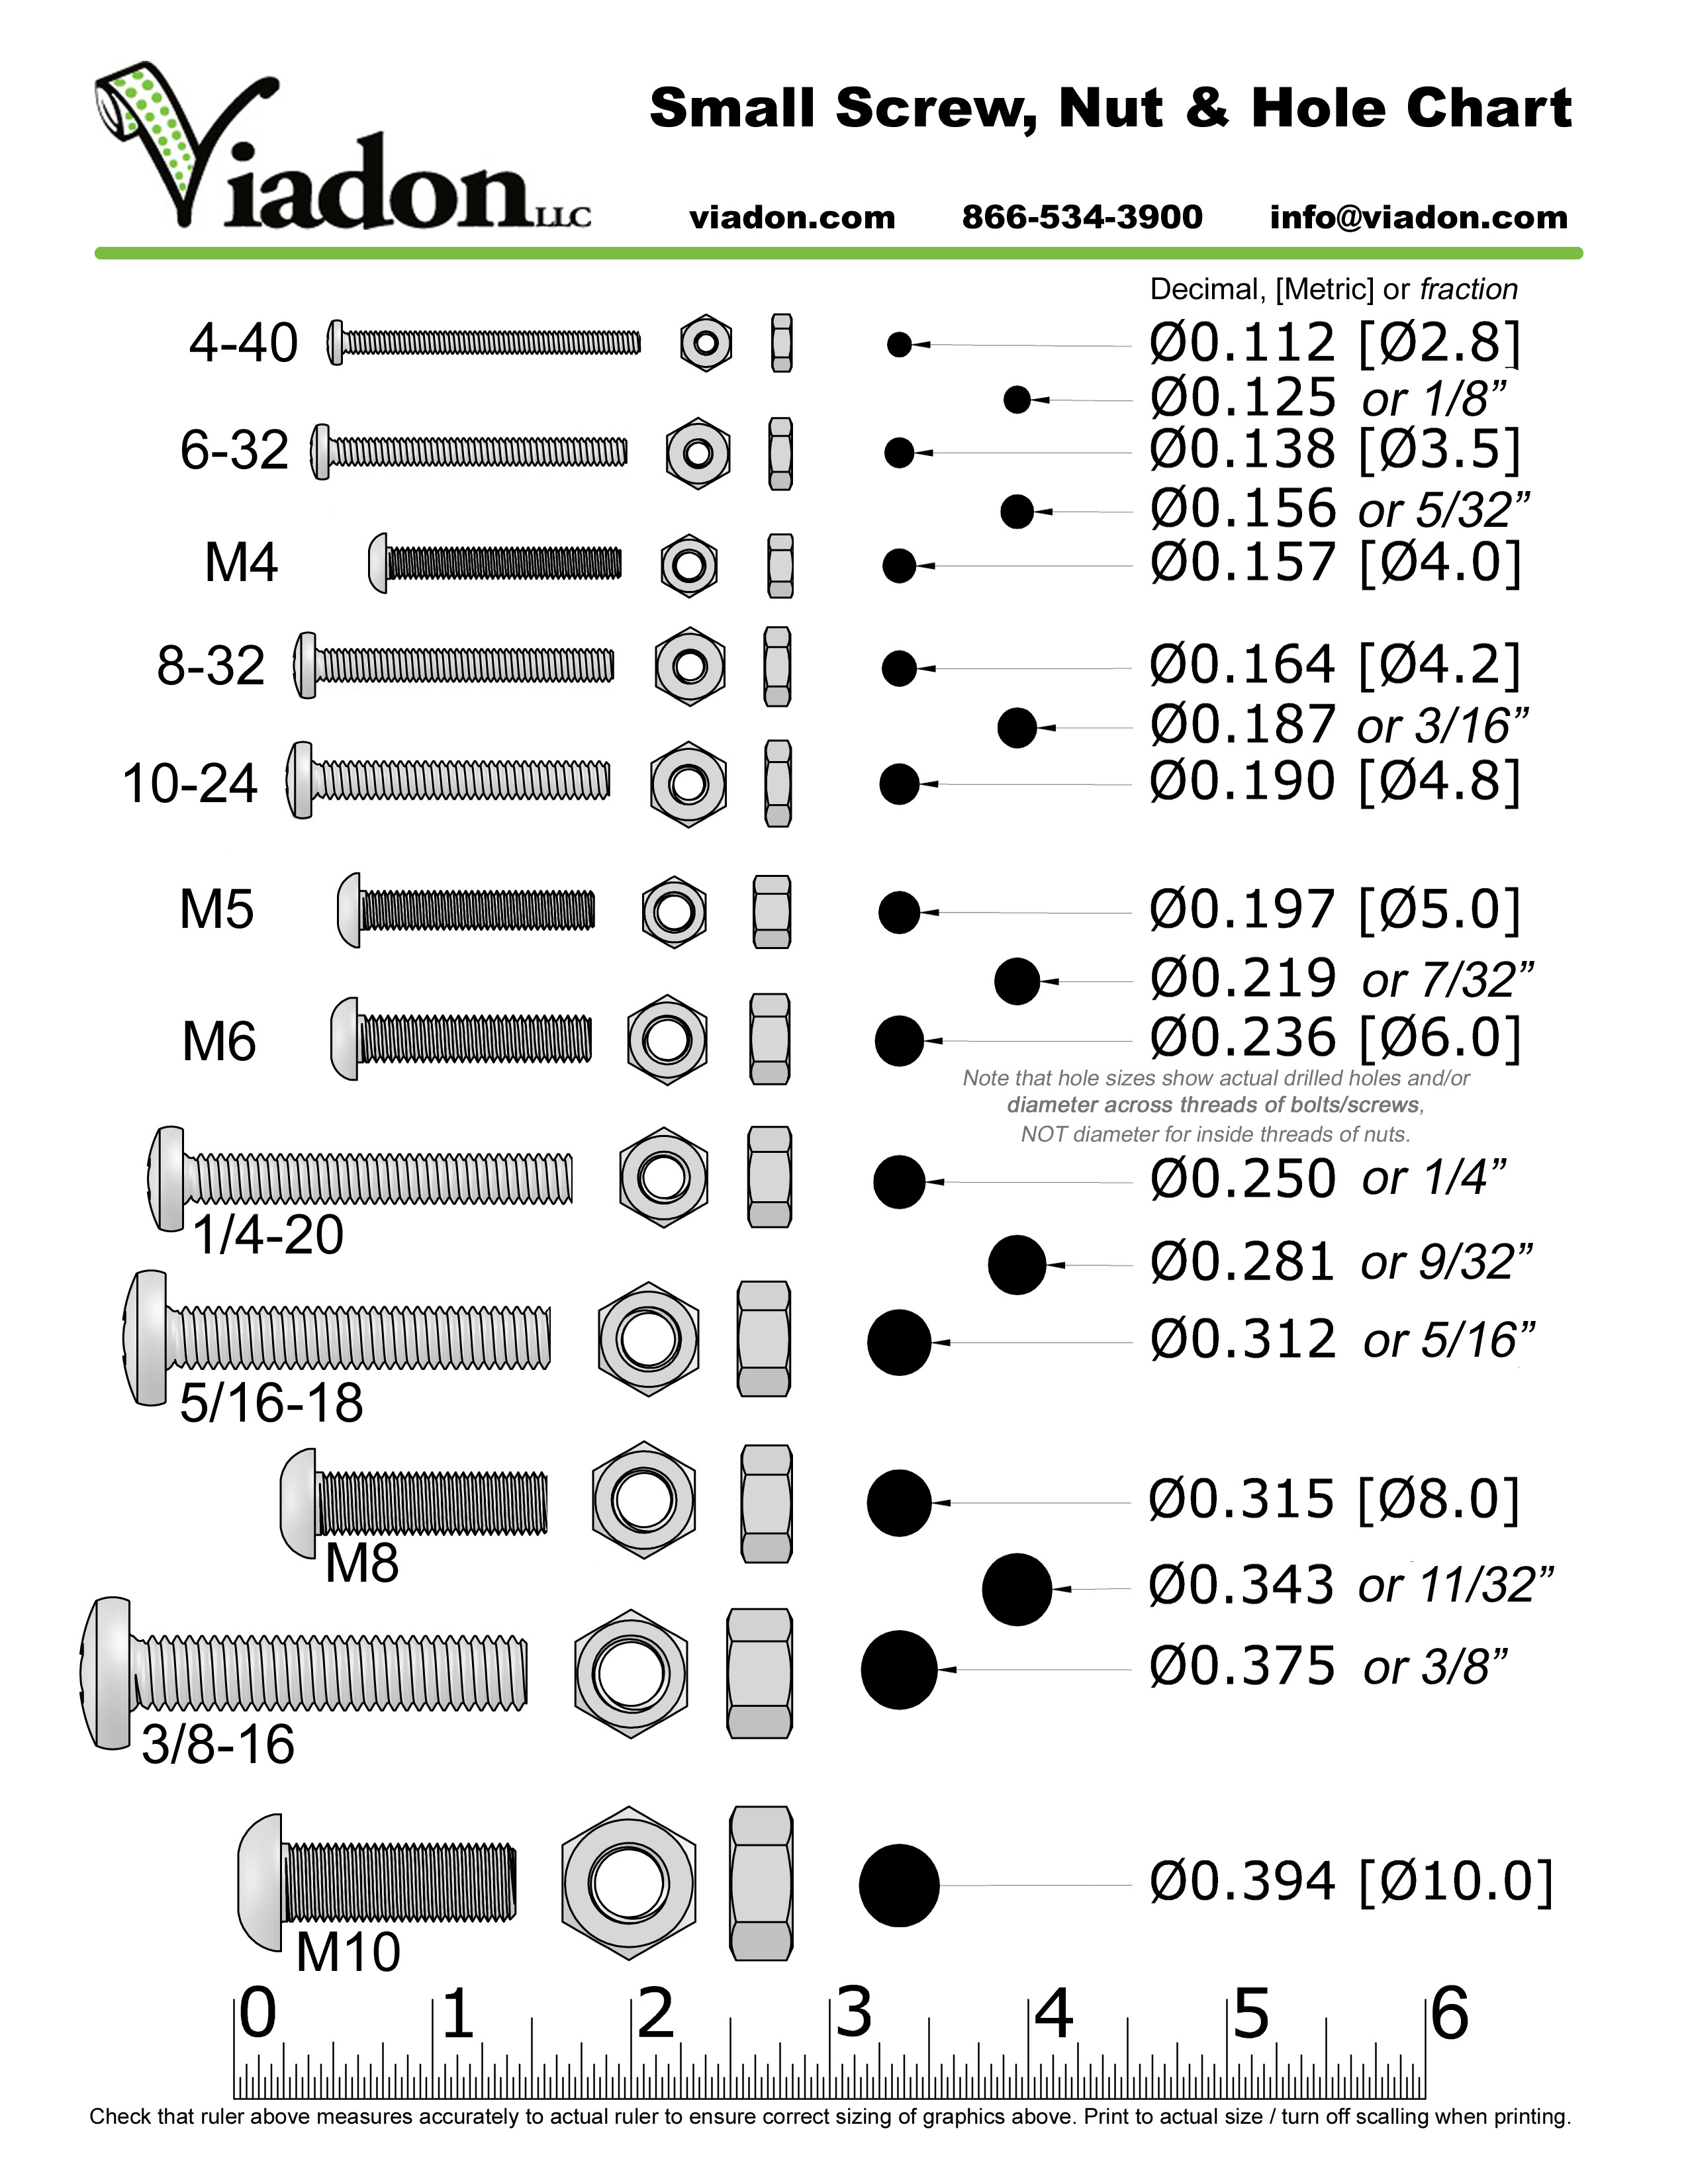 Chart comparing standard screw, nut, and hole sizes